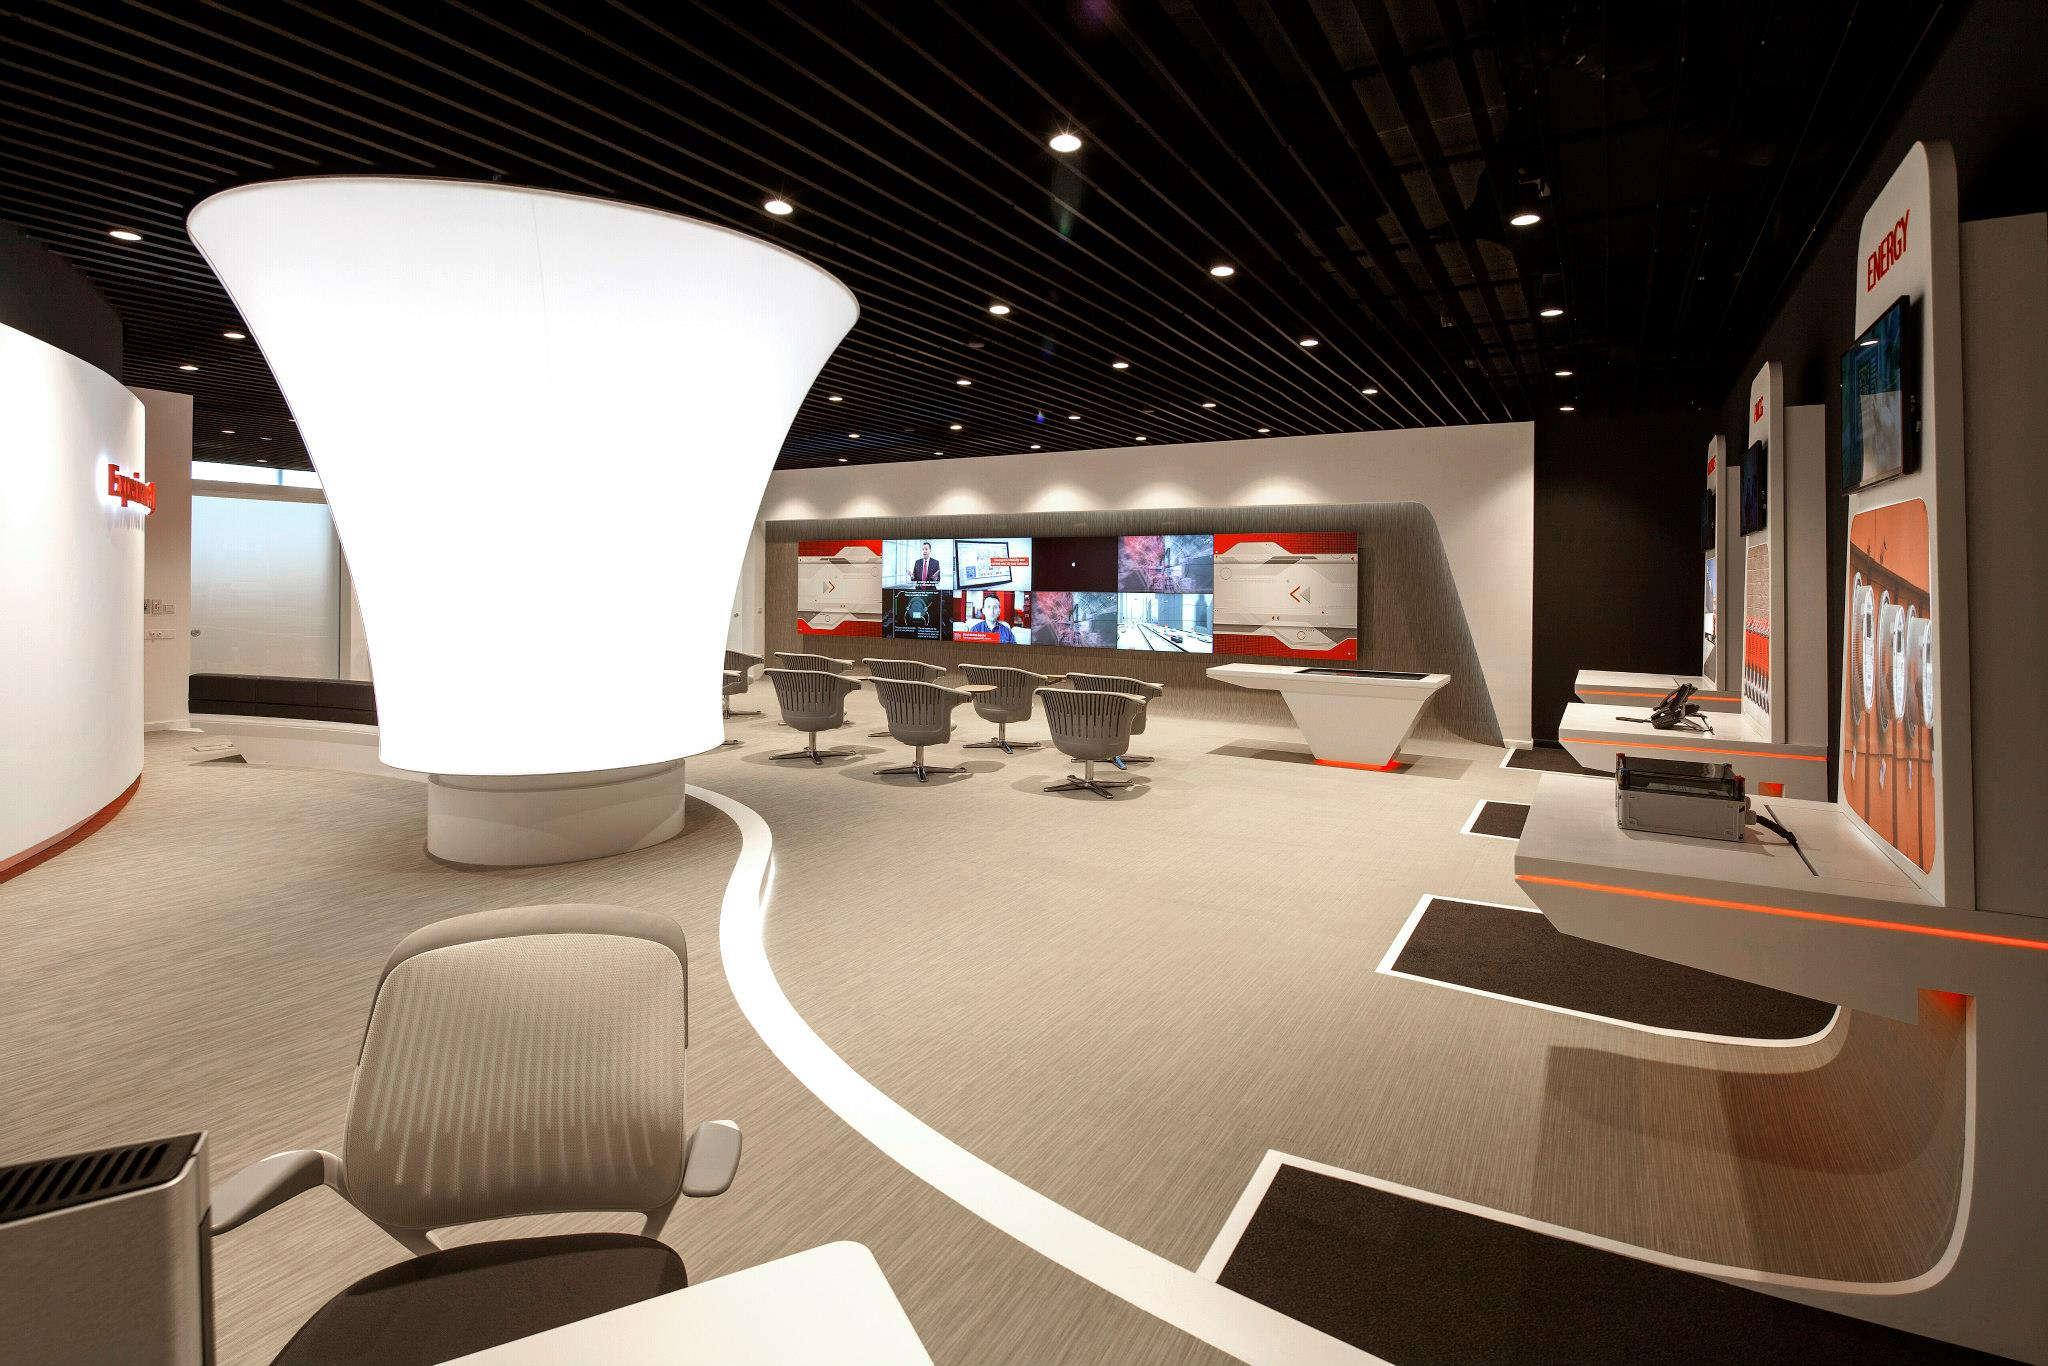 VODAFONE-Customer-Experience-Center-Pipera_Trivenus-Ama-Design_05